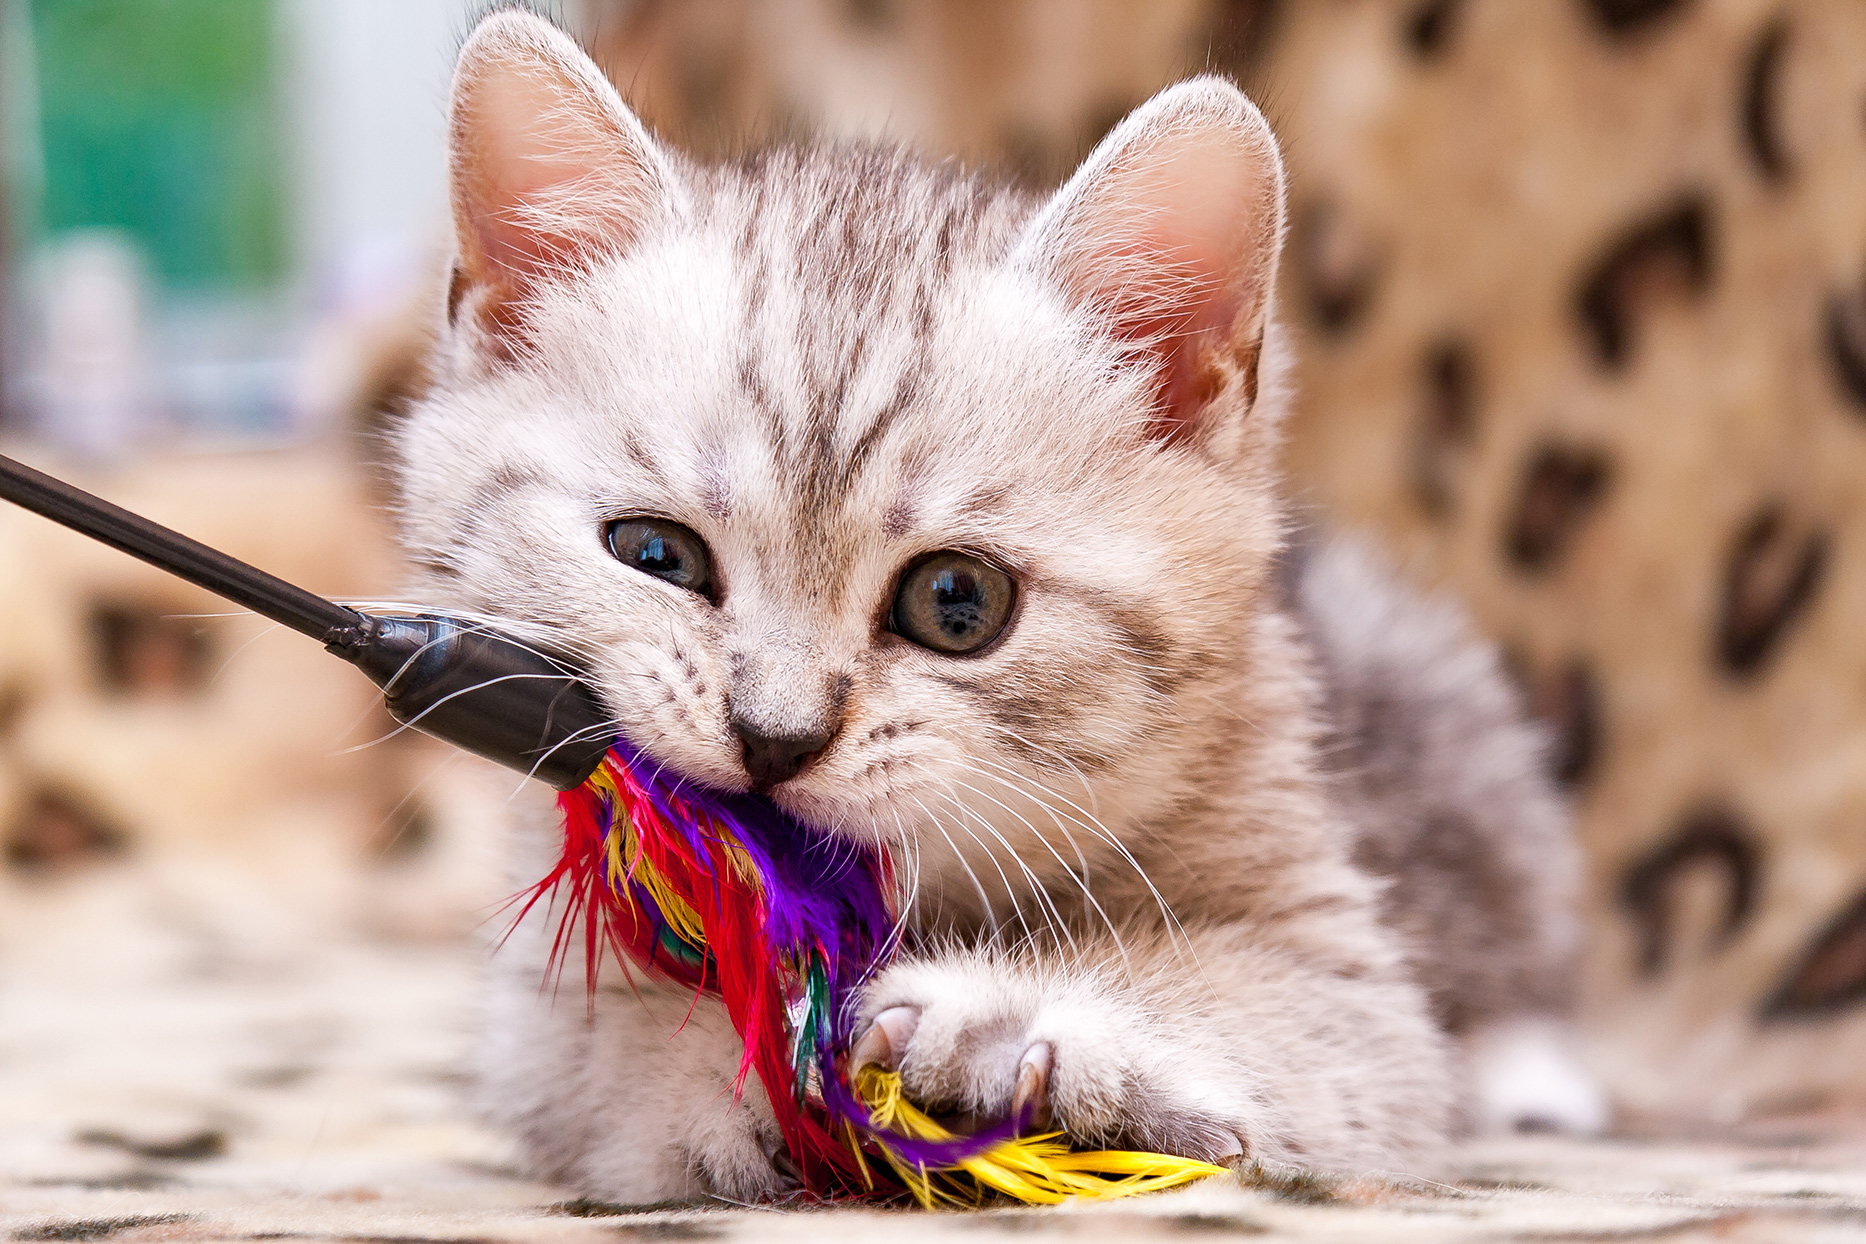 kitten chewing on toy